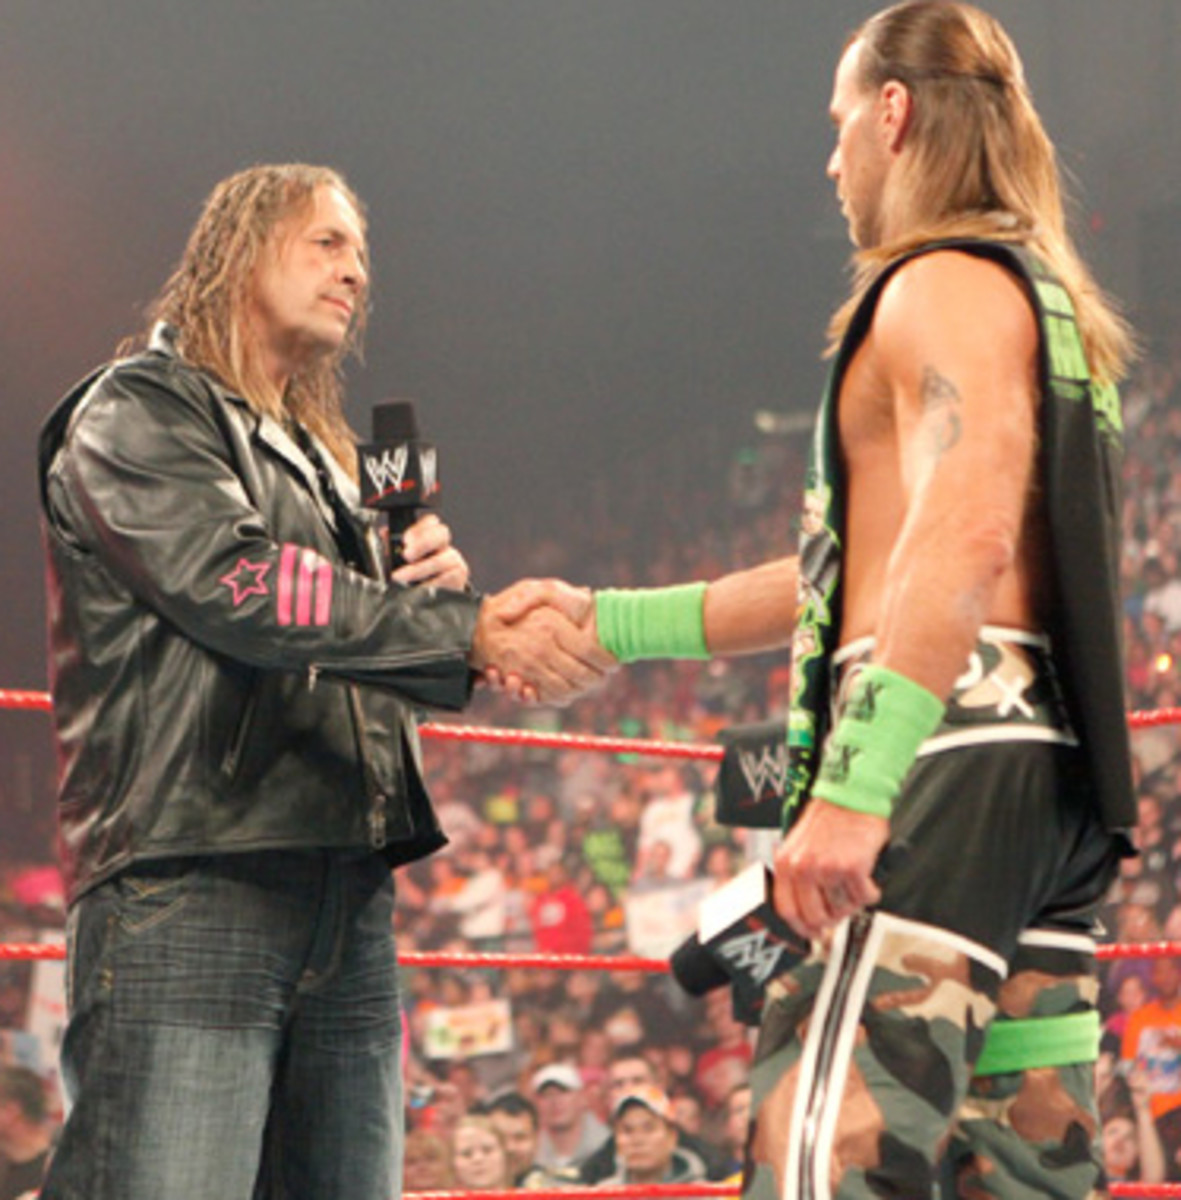 1/4/2010: Bret Hart and Shawn Michaels meet in the ring for the first time in 12 years